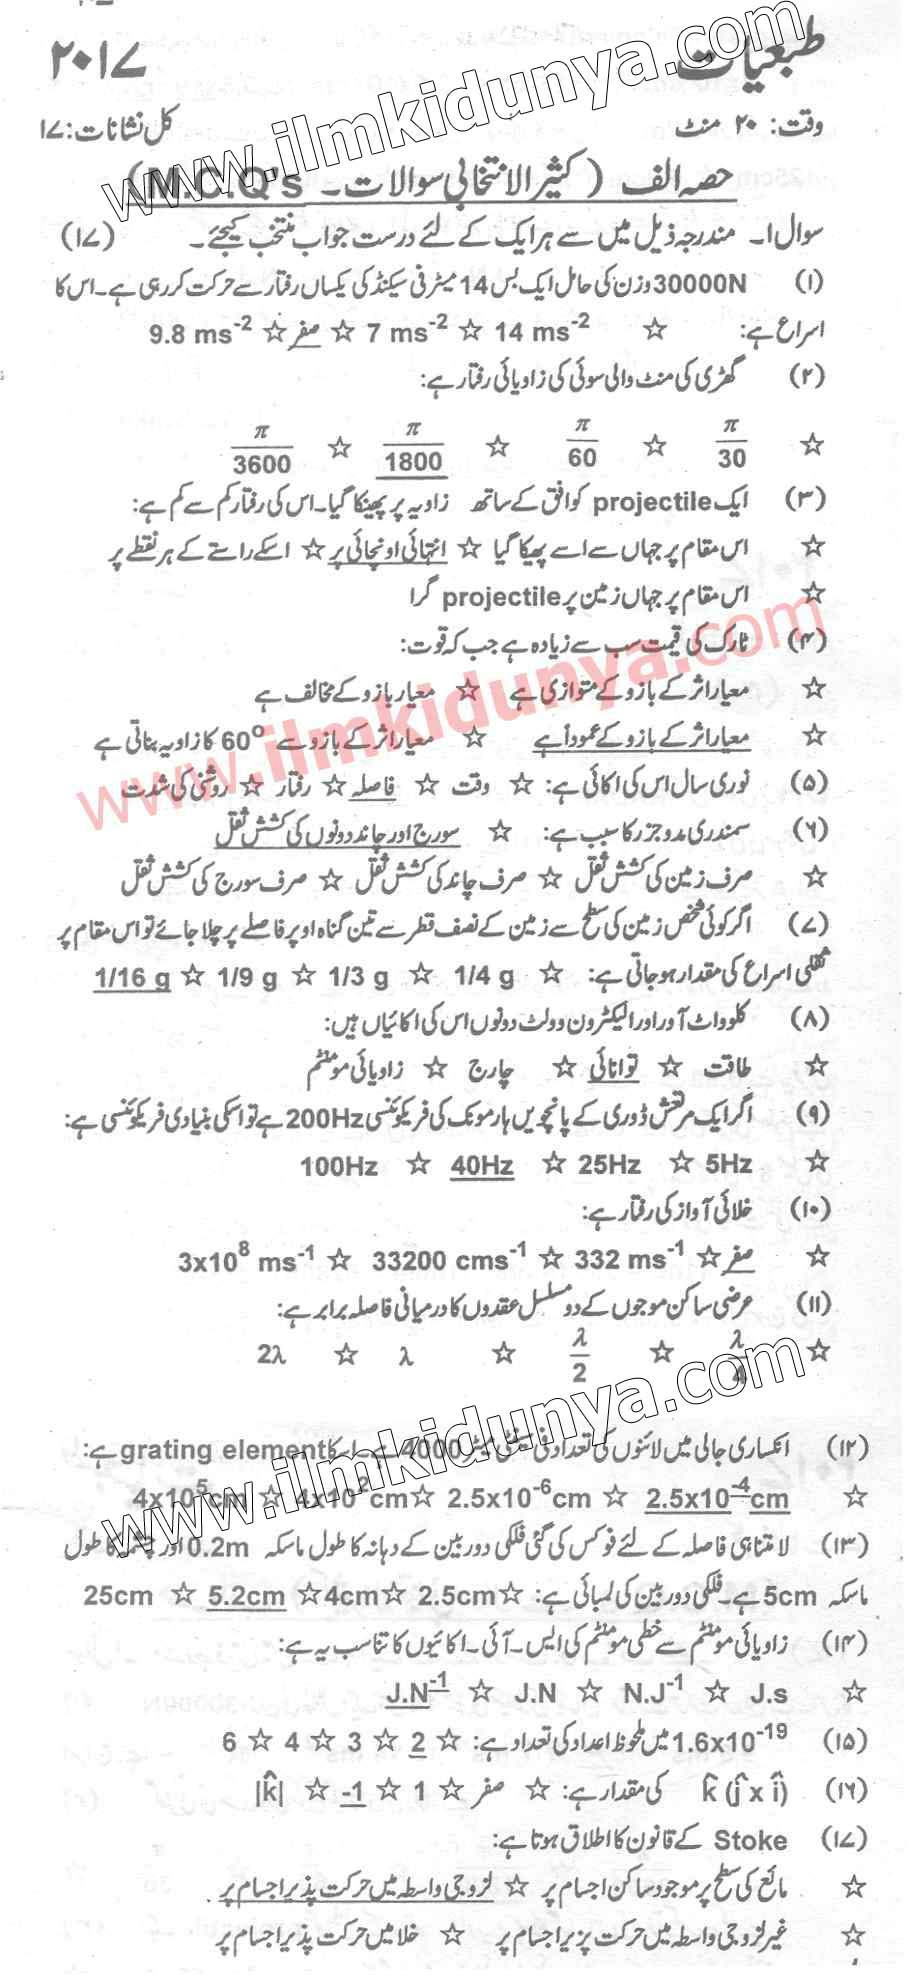 past papers of intermediate part 1 Icom part 1 past papers of all the educational boards of pakistan are available here students can get all inter part 1 past papers here.